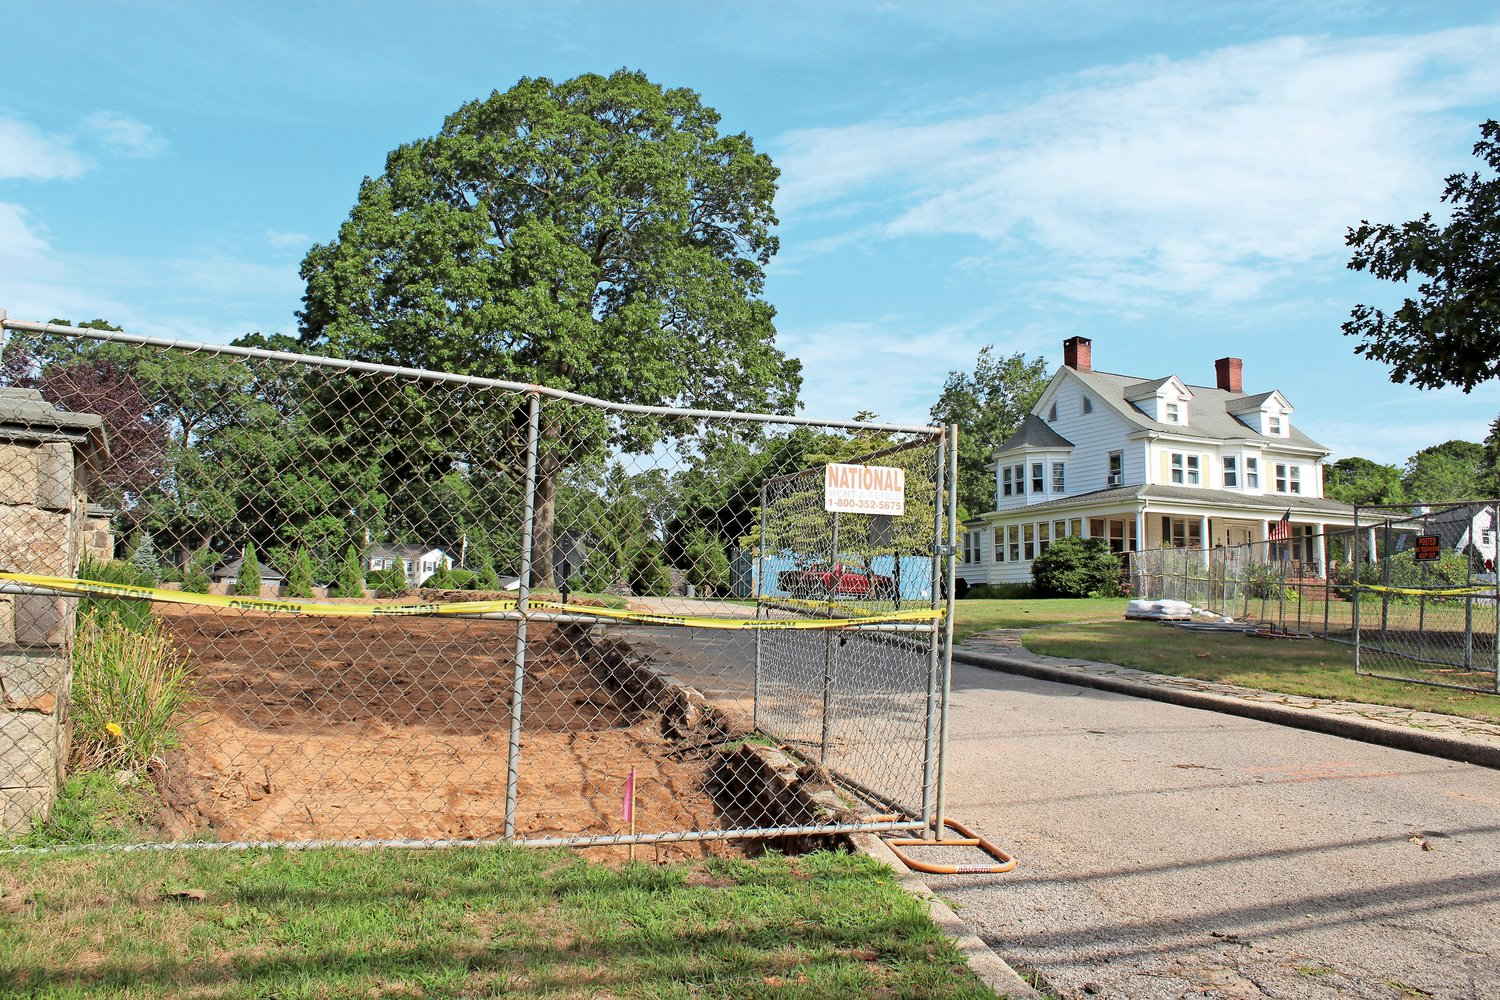 Construction will begin on Killarney Lane immediately, according to Christian Browne, the attorney for property owners James and Brett O'Reilly.